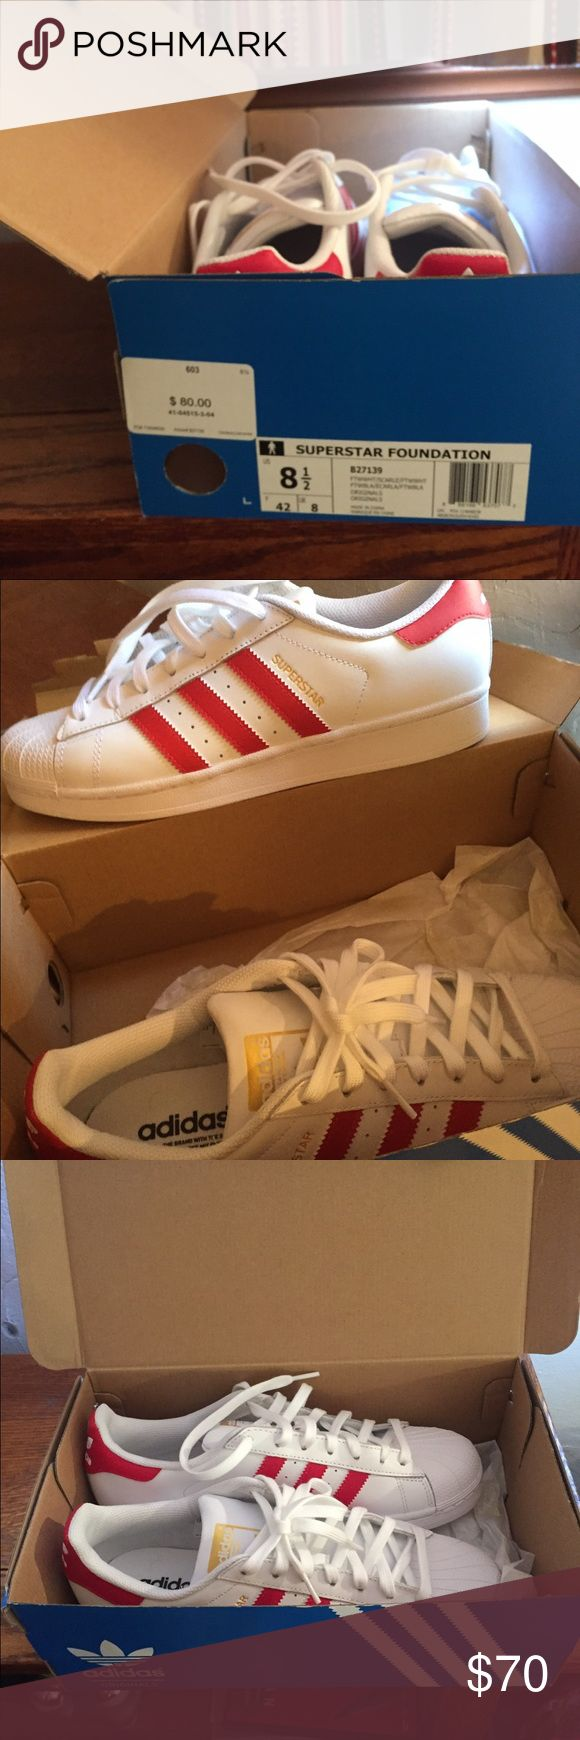 Adidas Superstars White w/ red stripes. Brand new out the box. adidas Shoes Sneakers